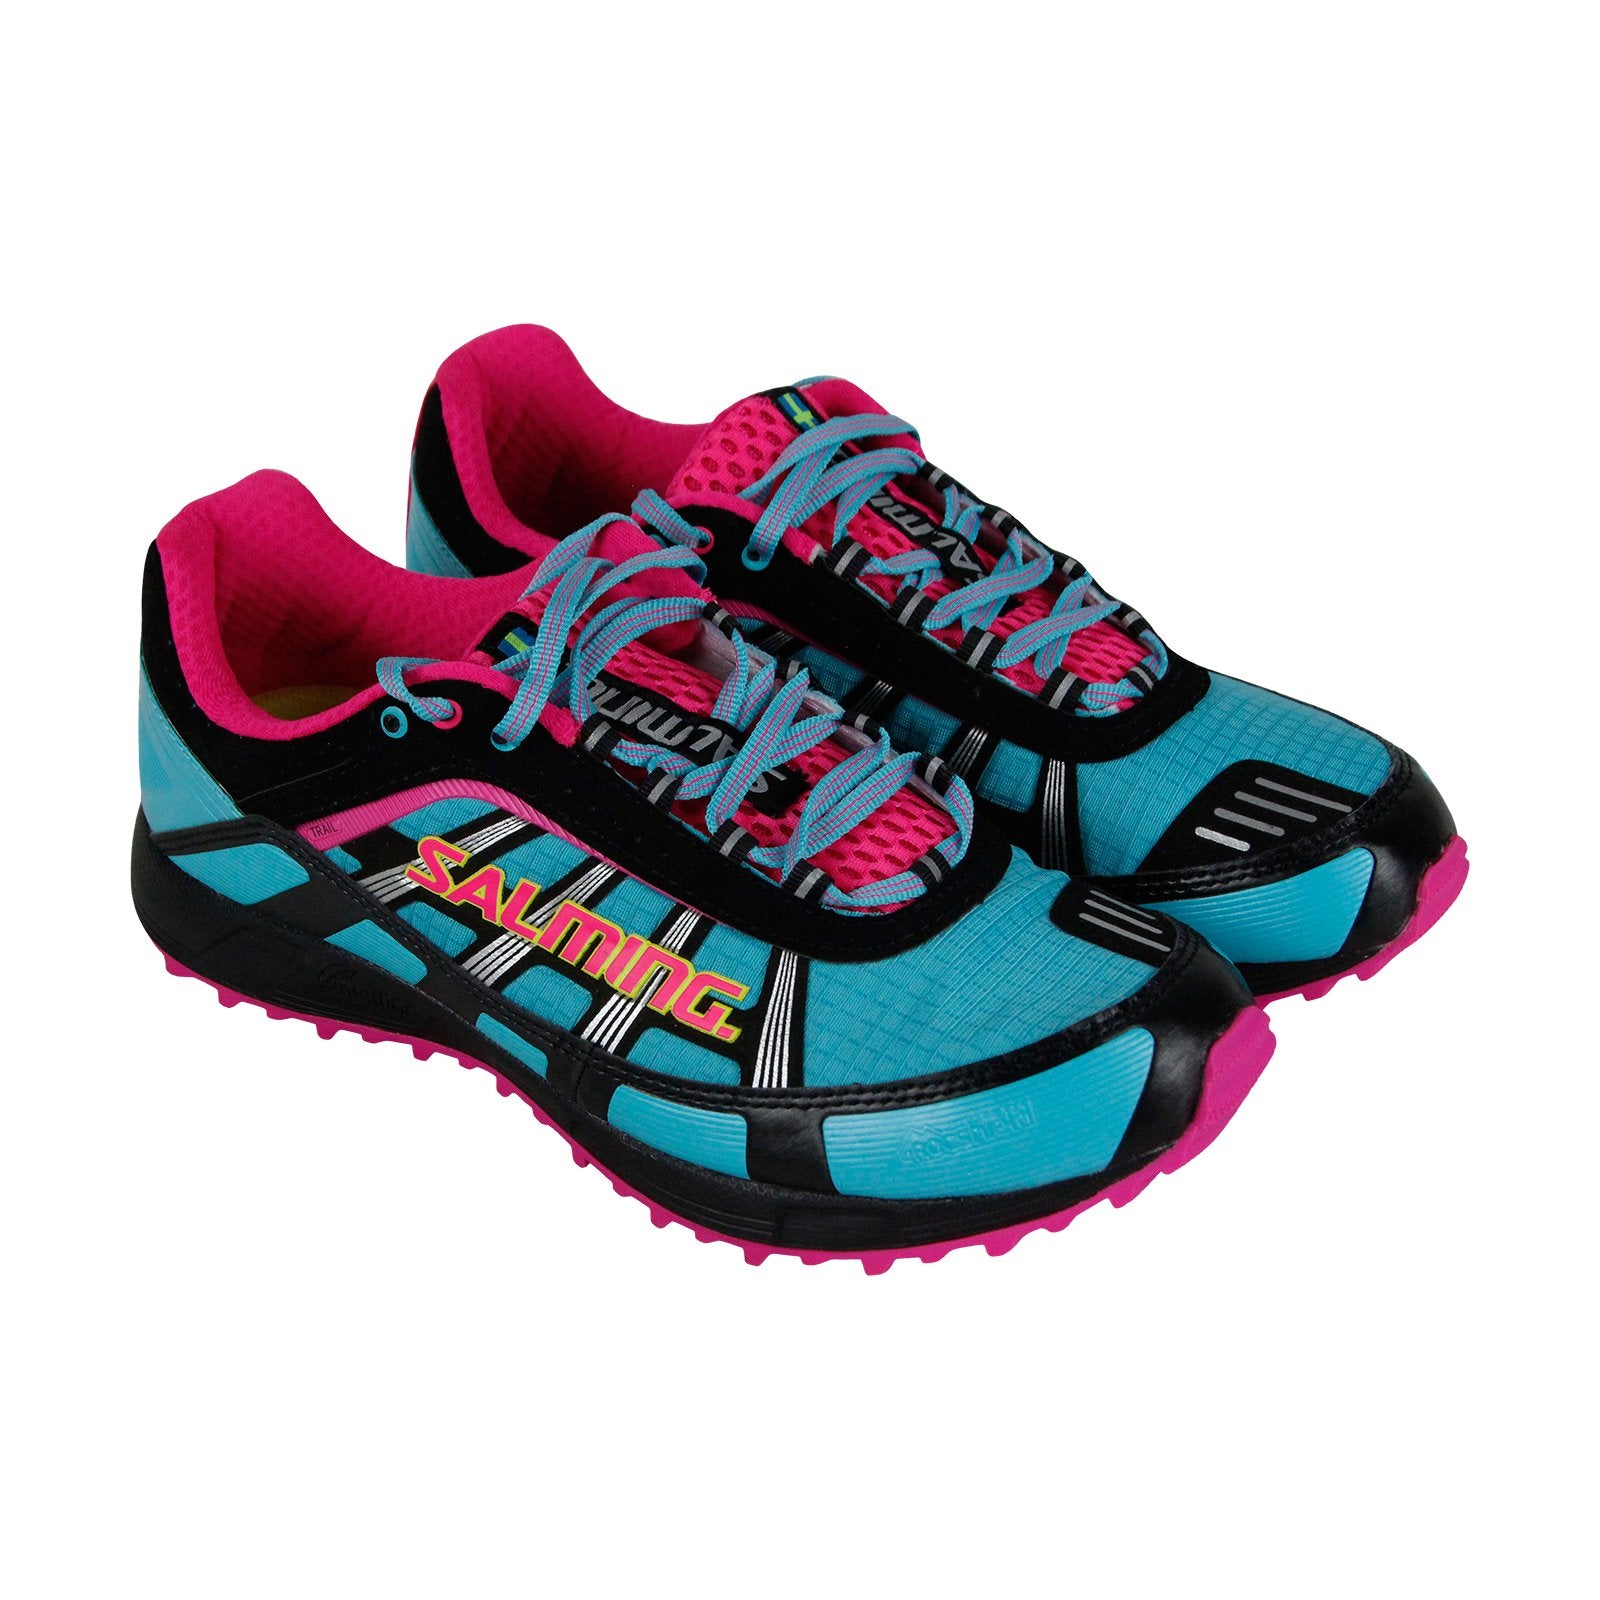 low priced 6c37e 5c81e Salming Trail T2 Womens Blue Textile & Leather Athletic Running Shoes